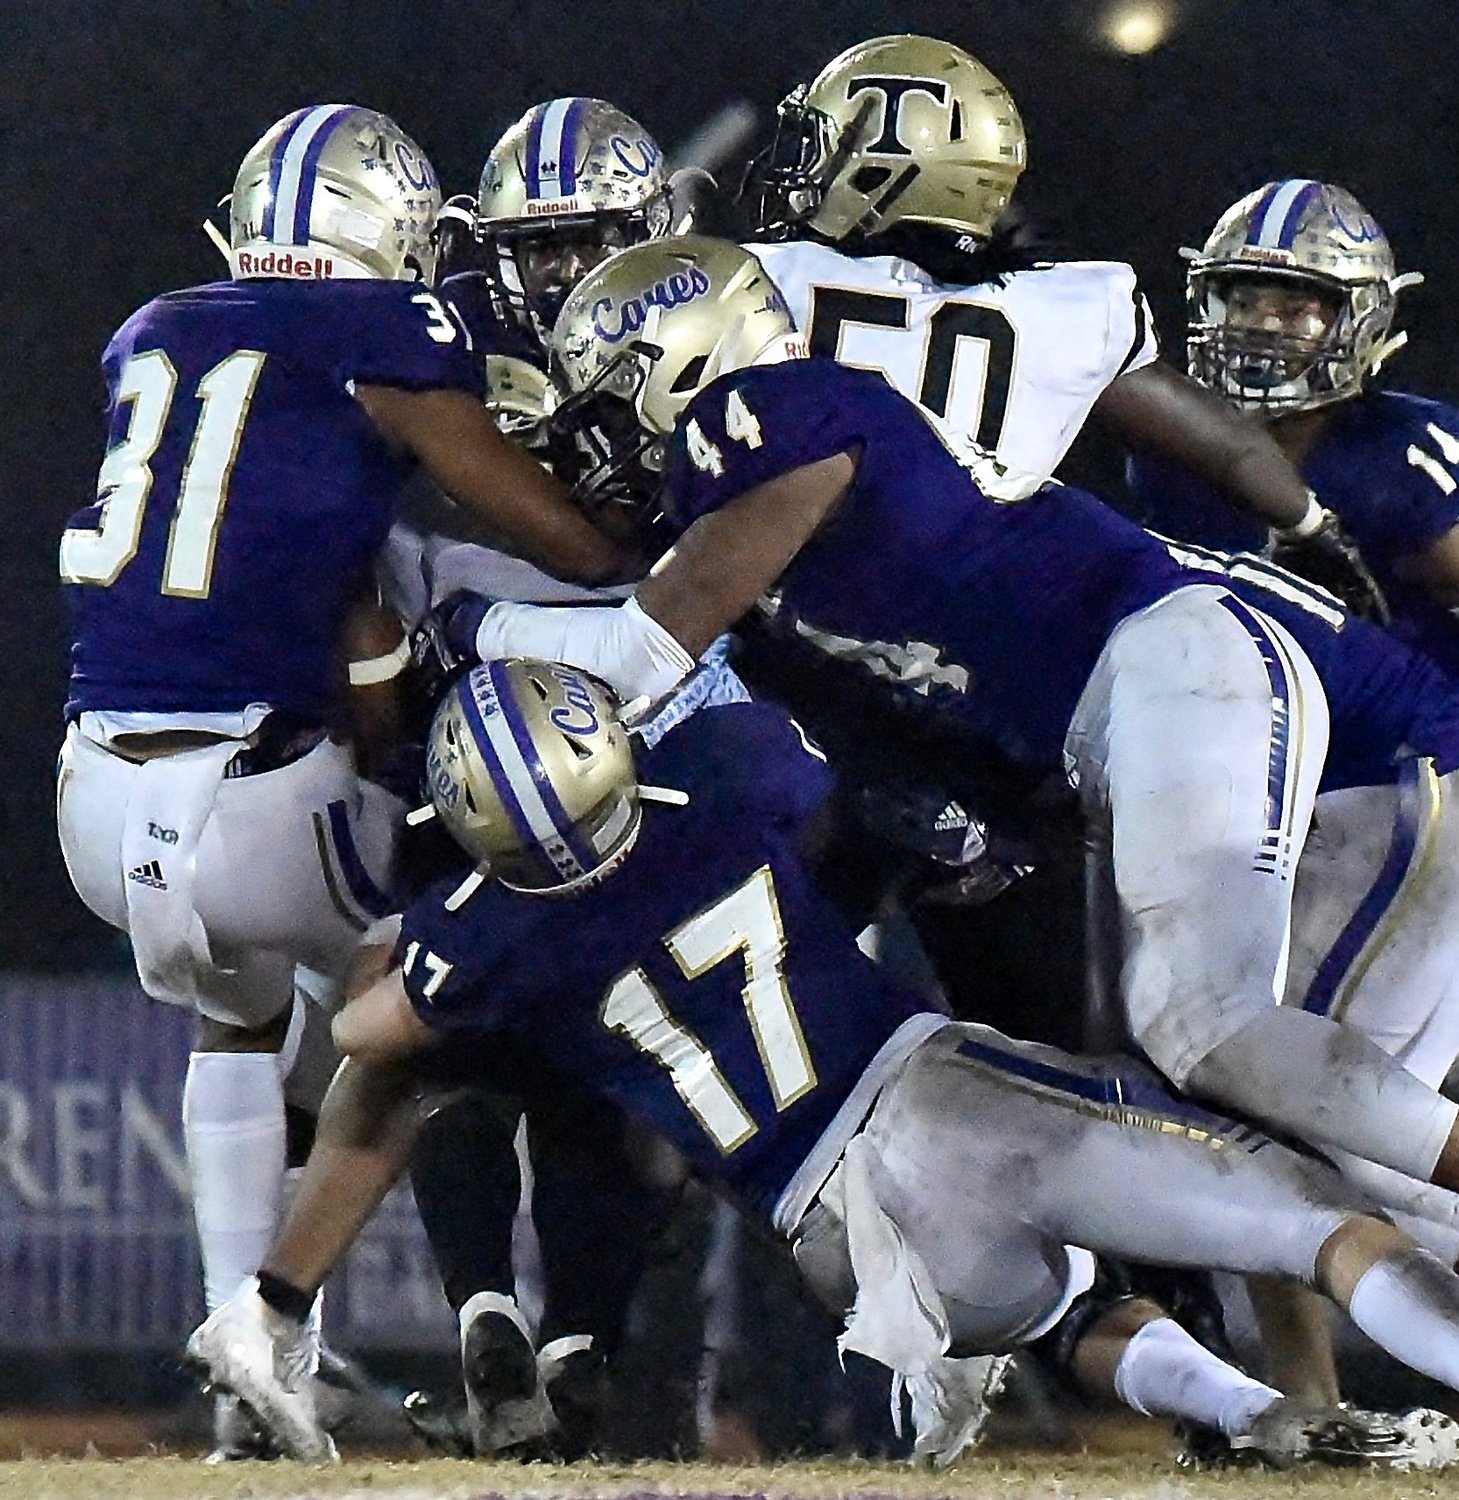 A group of Cartersville defenders led by, from left, Amarai Orr (31), Gavin Geros (17) and Emmanuel Hayes (44) take down a Thomson ballcarrier during a Class 4A state second-round matchup Friday at Weinman Stadium. The Canes will host Woodward Academy this week in the quarterfinals.